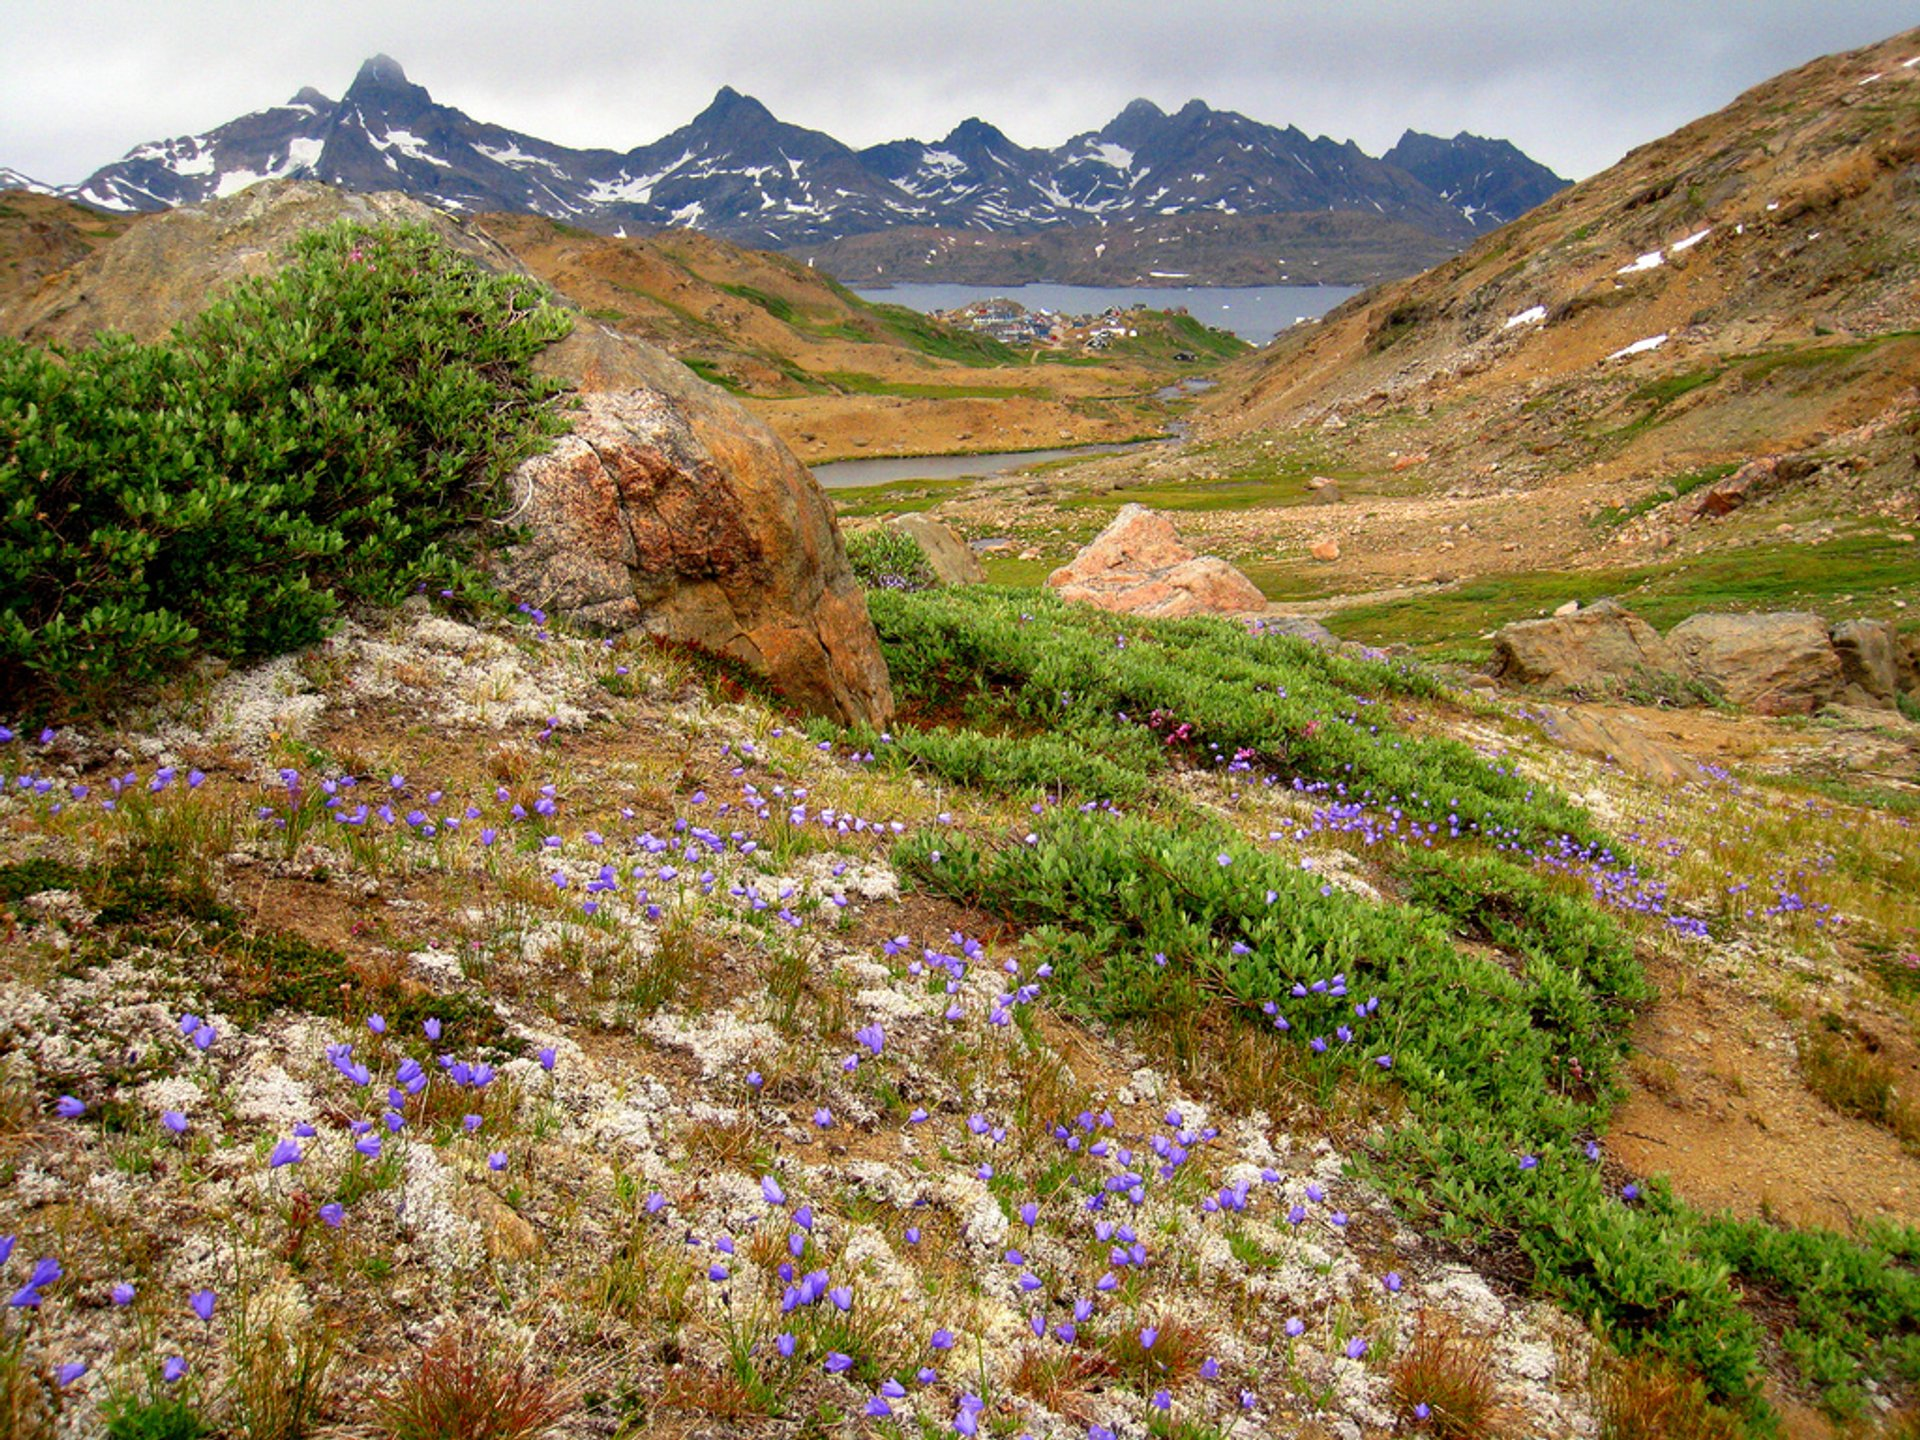 Valley of the Flowers, Tasiilaq 2020